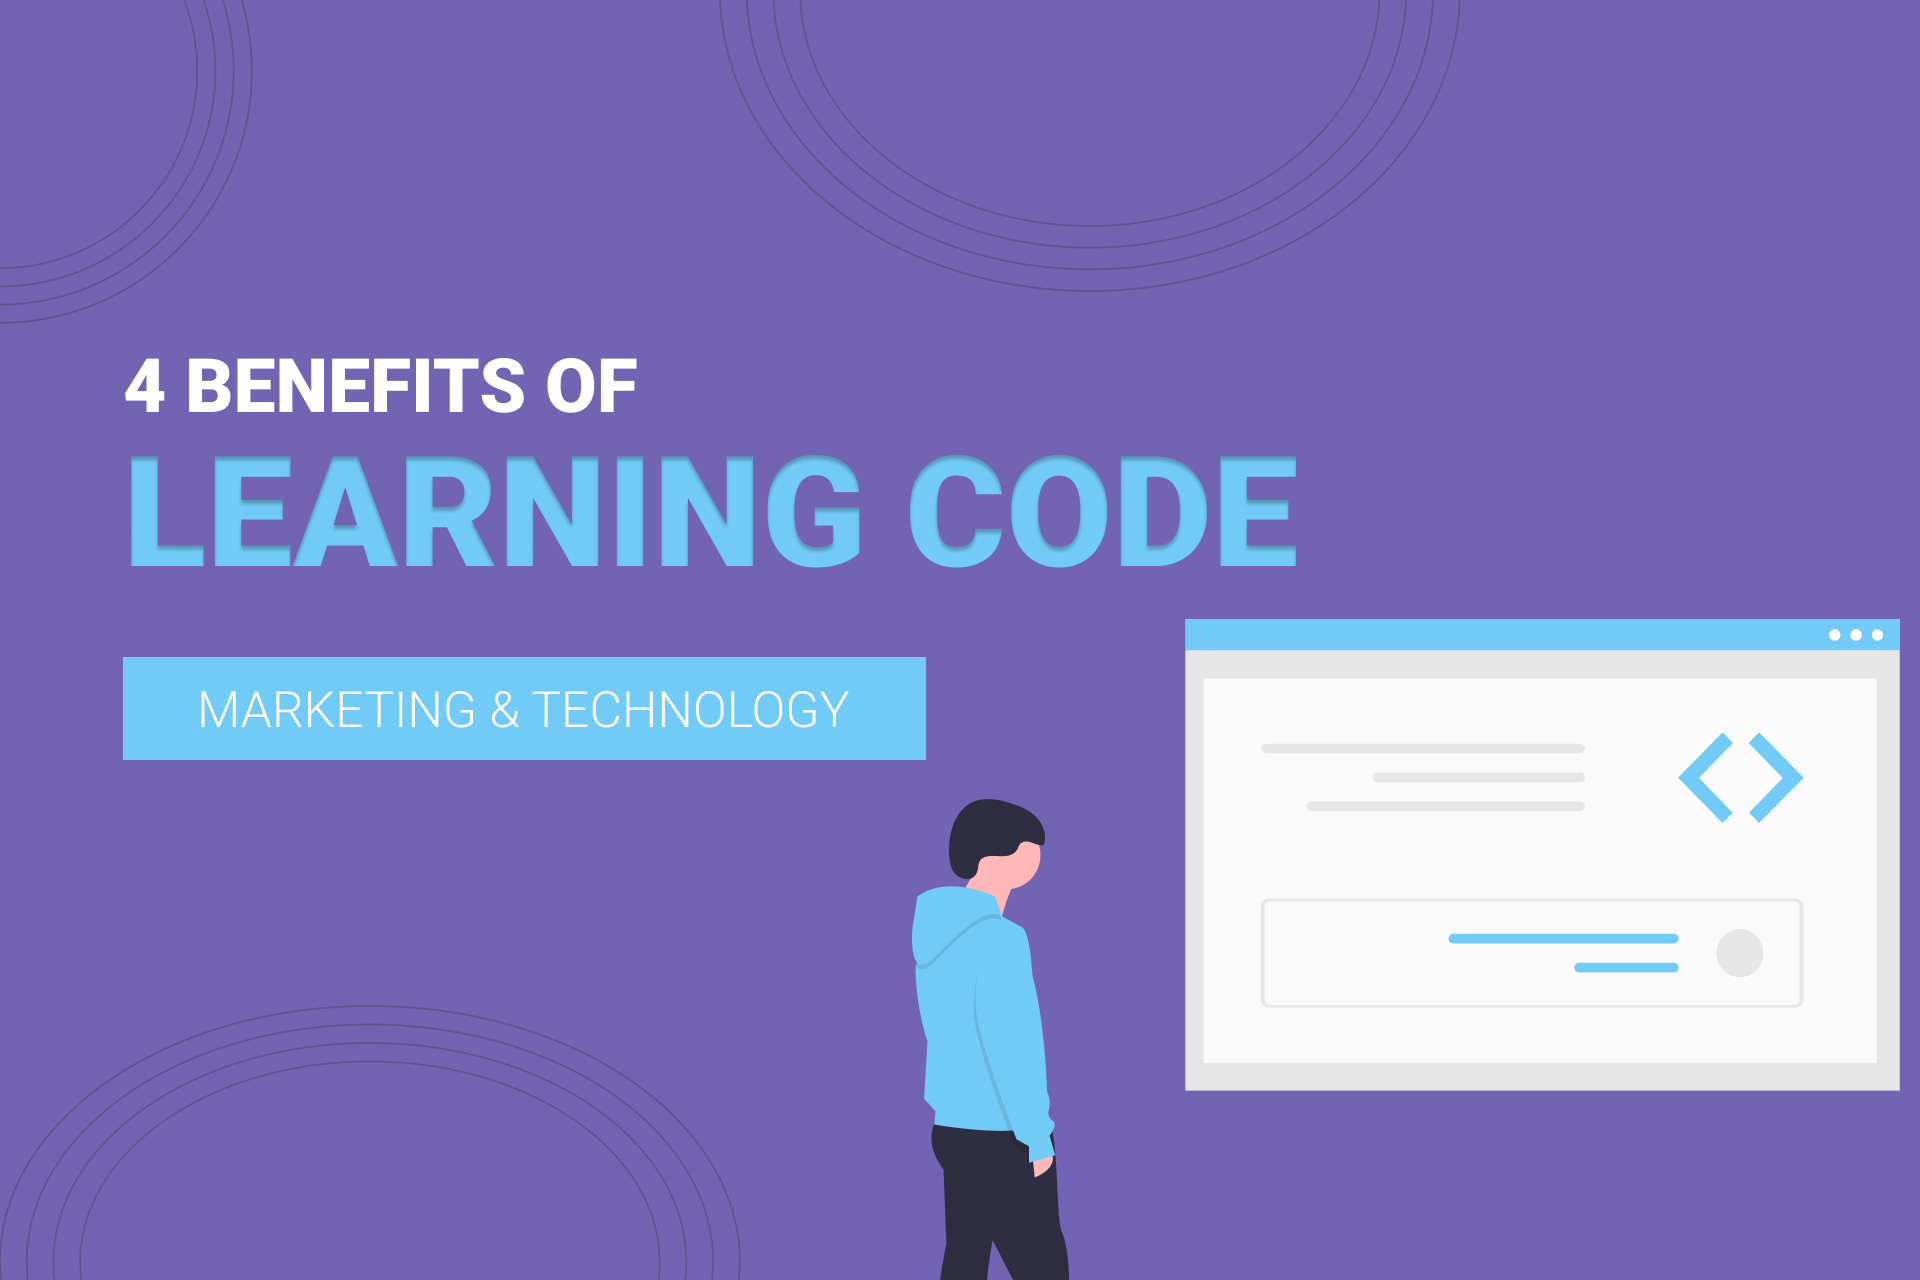 4 Benefits of Learning Code